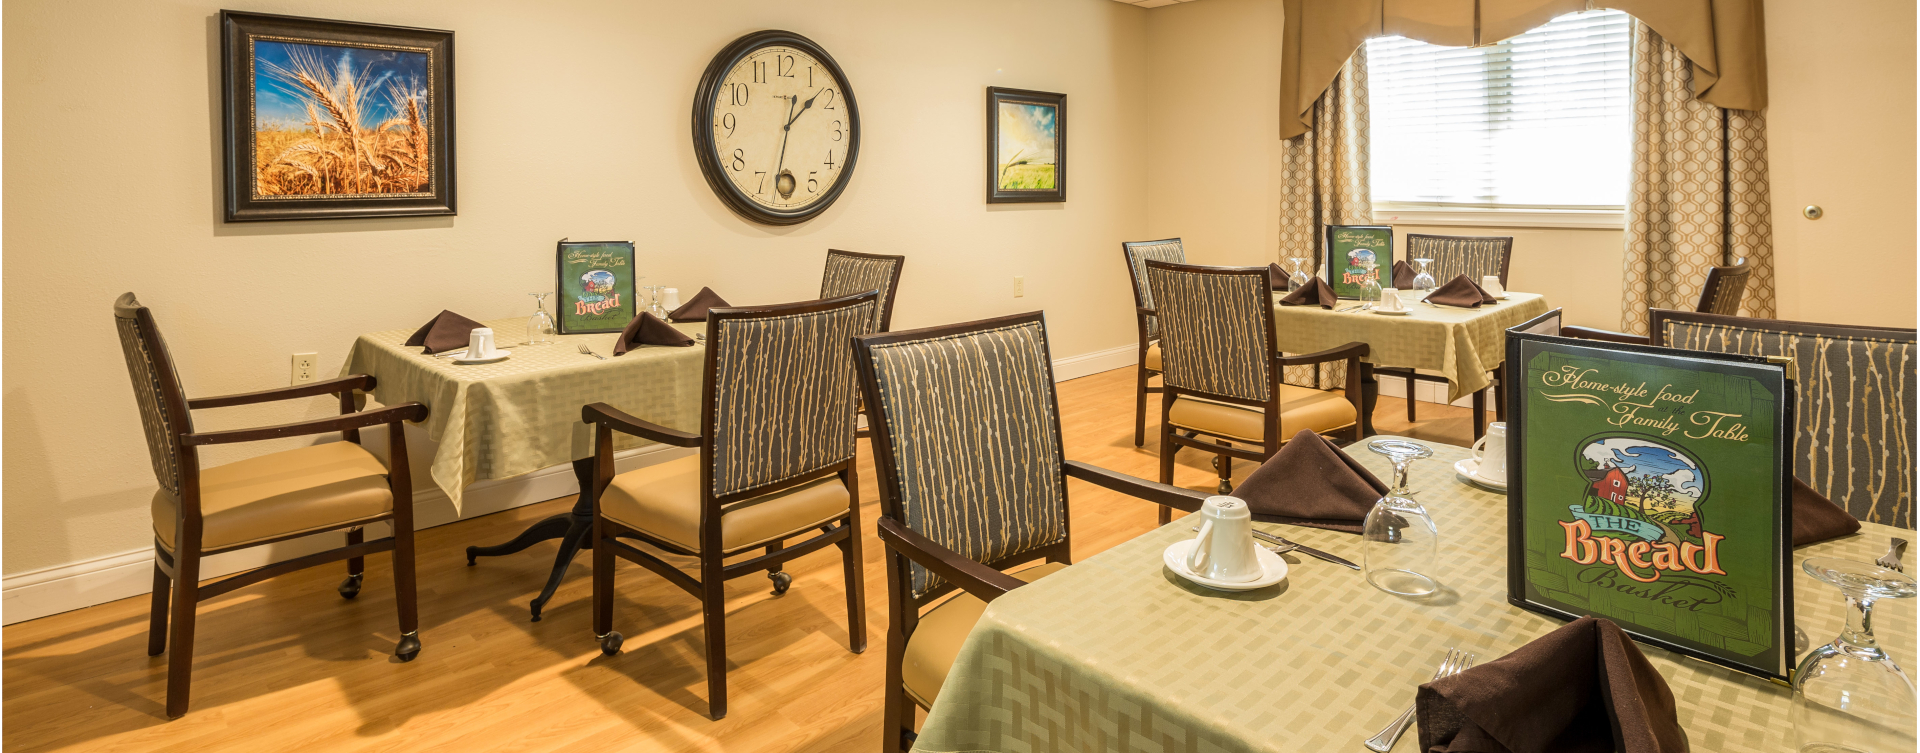 Food is best when shared with friends in the dining room at Bickford of West Lansing